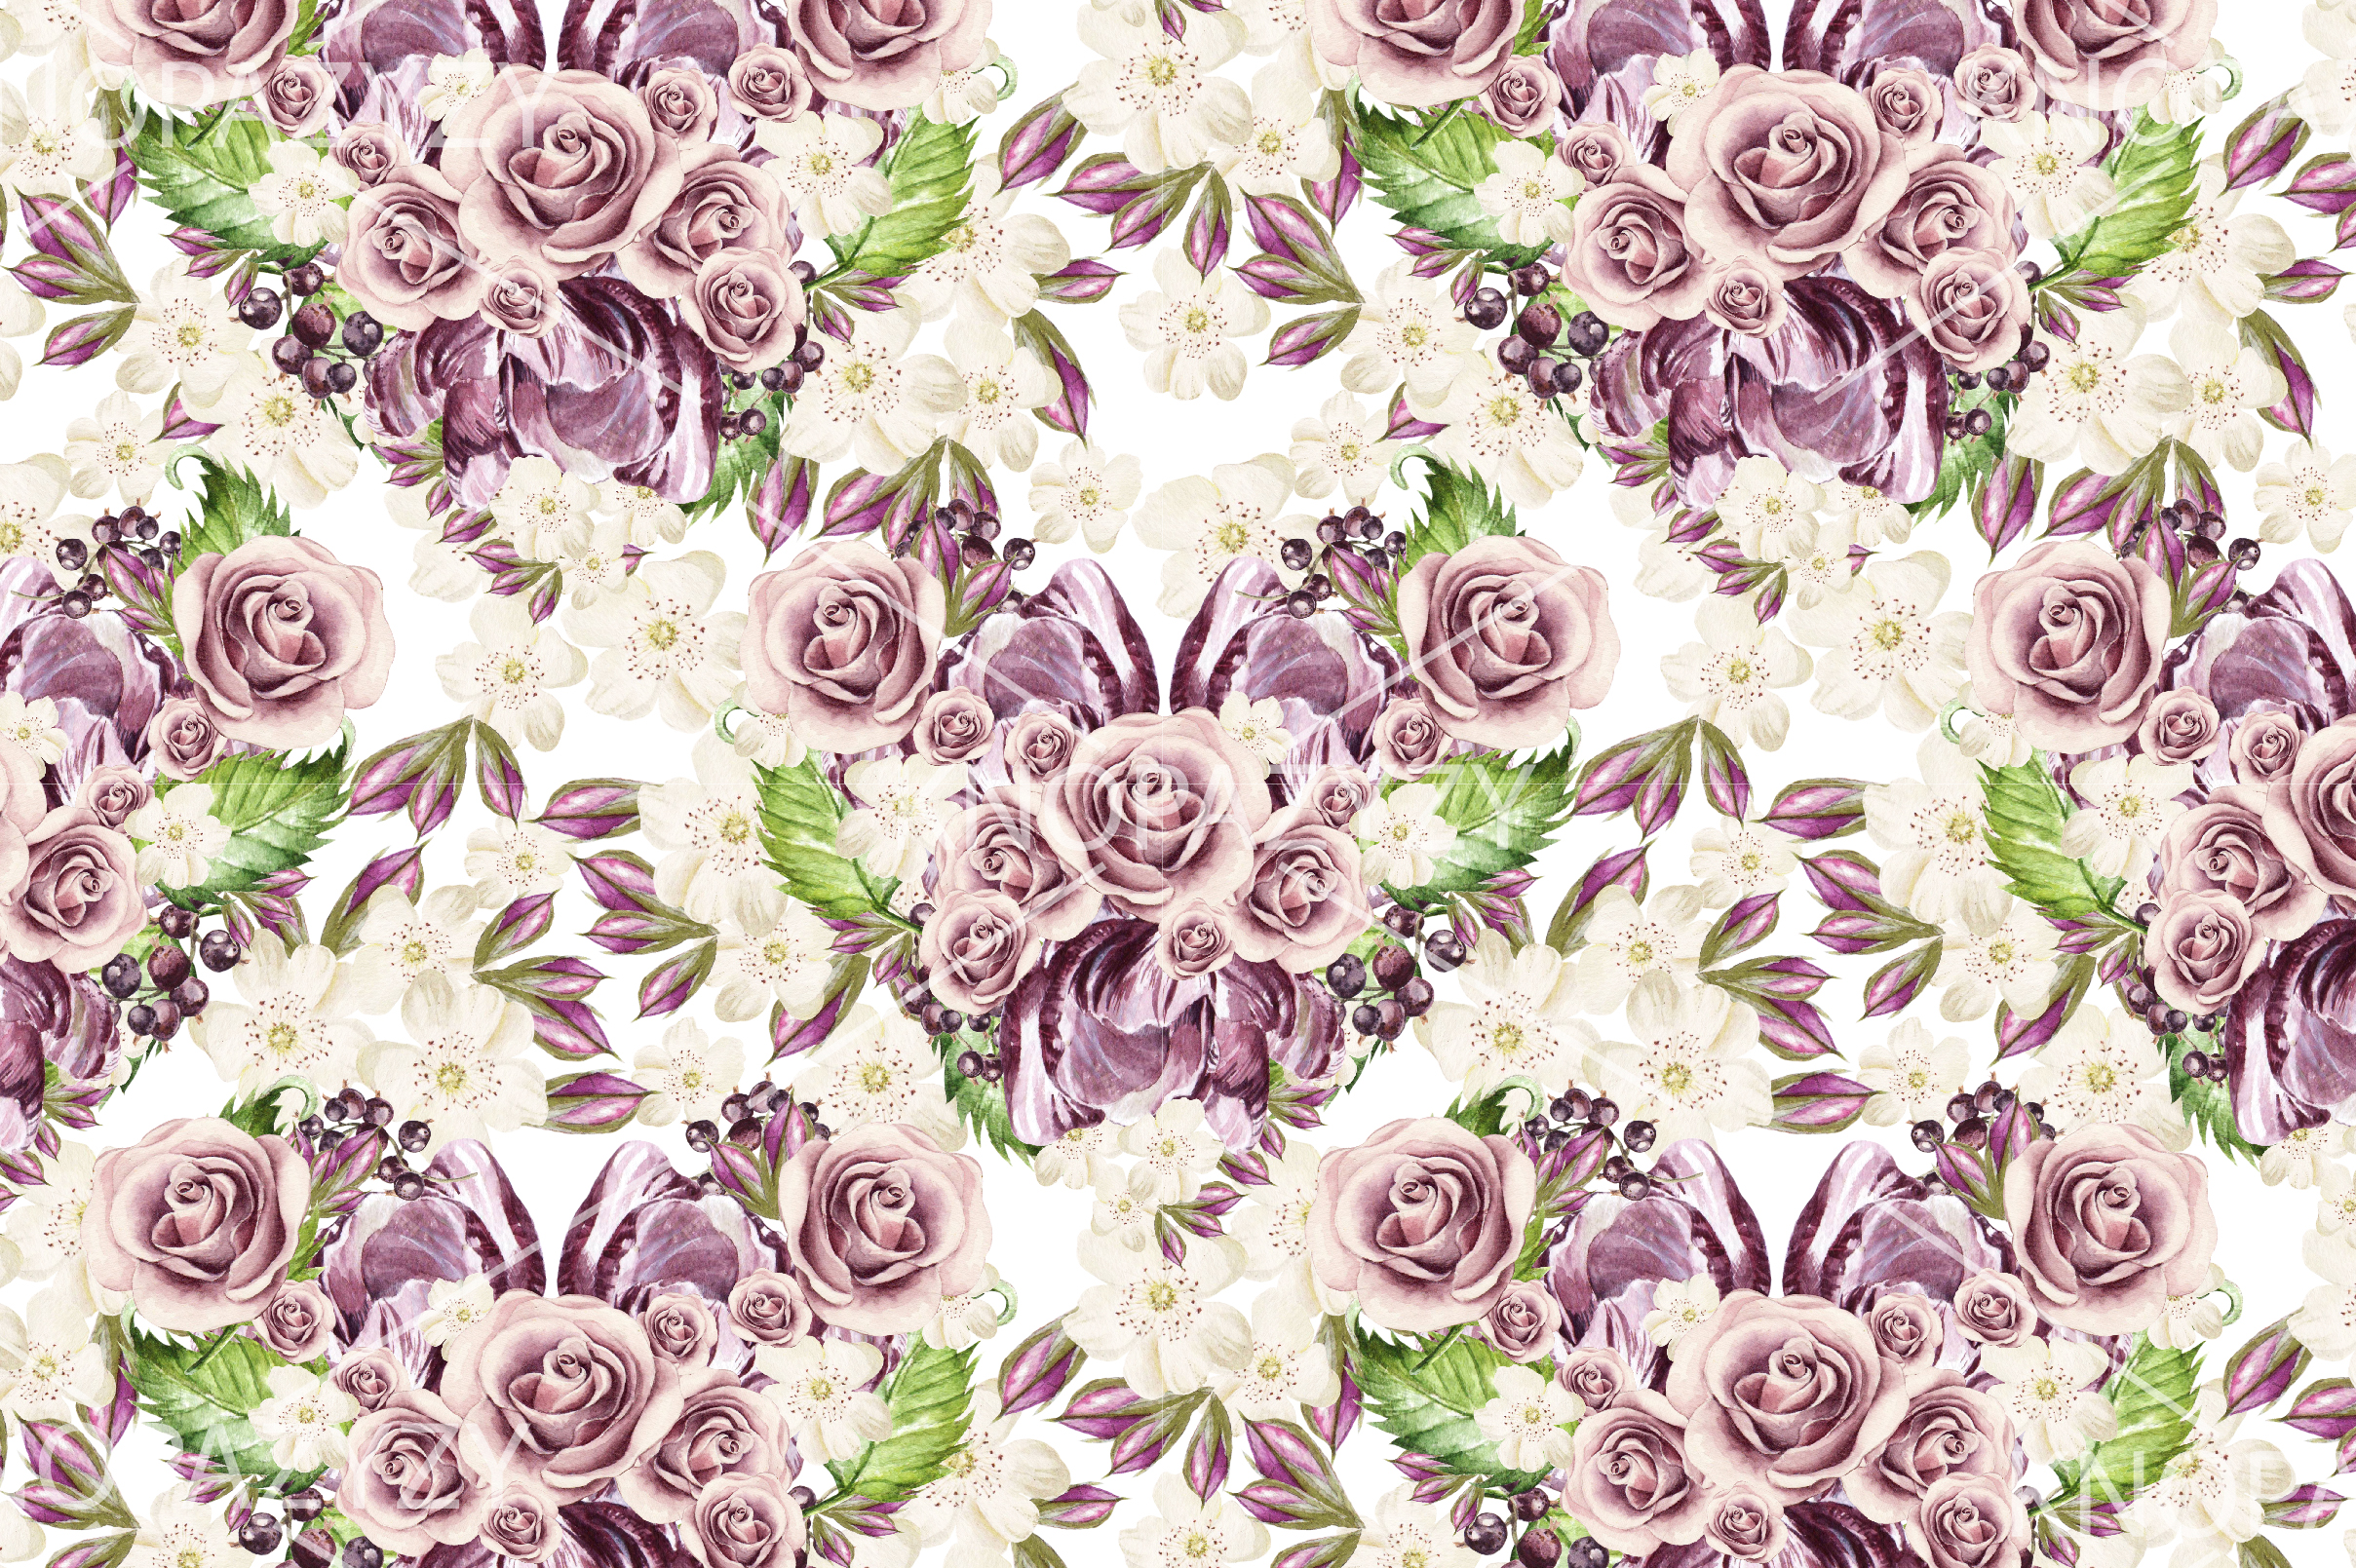 15 Hand Drawn Watercolor PATTERNS example image 15